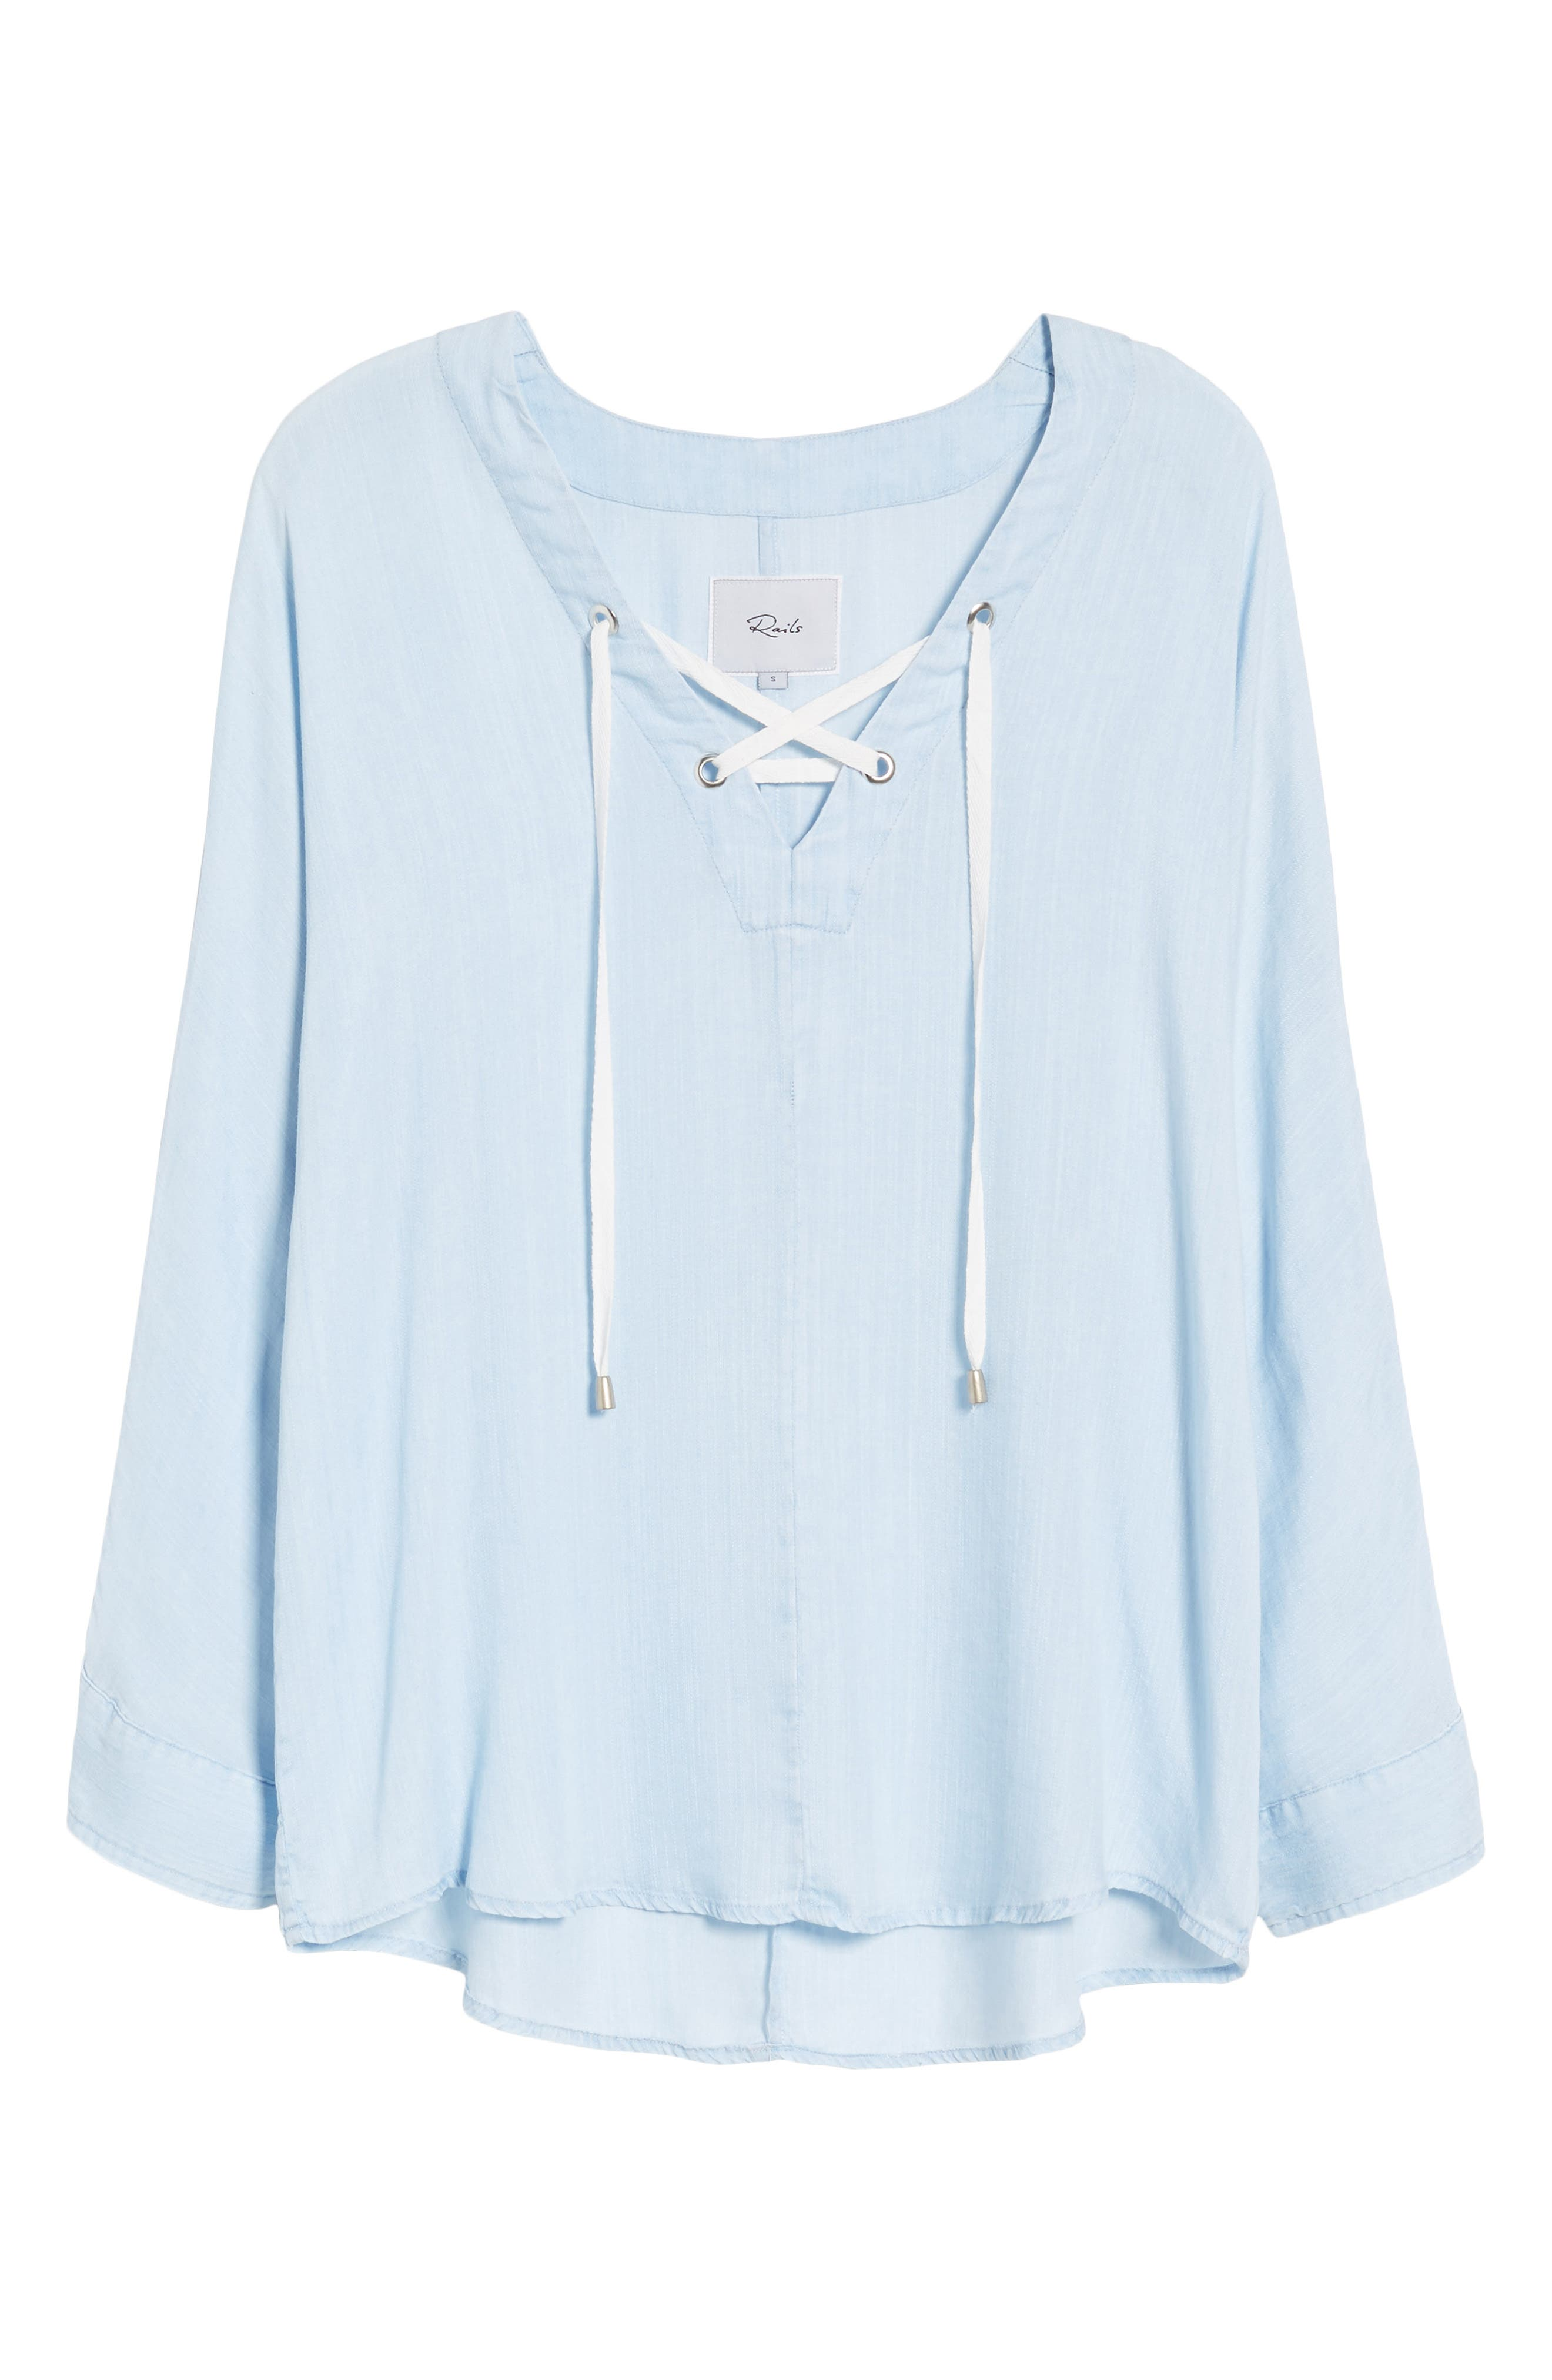 Lily Lace-Up Top,                             Alternate thumbnail 7, color,                             421